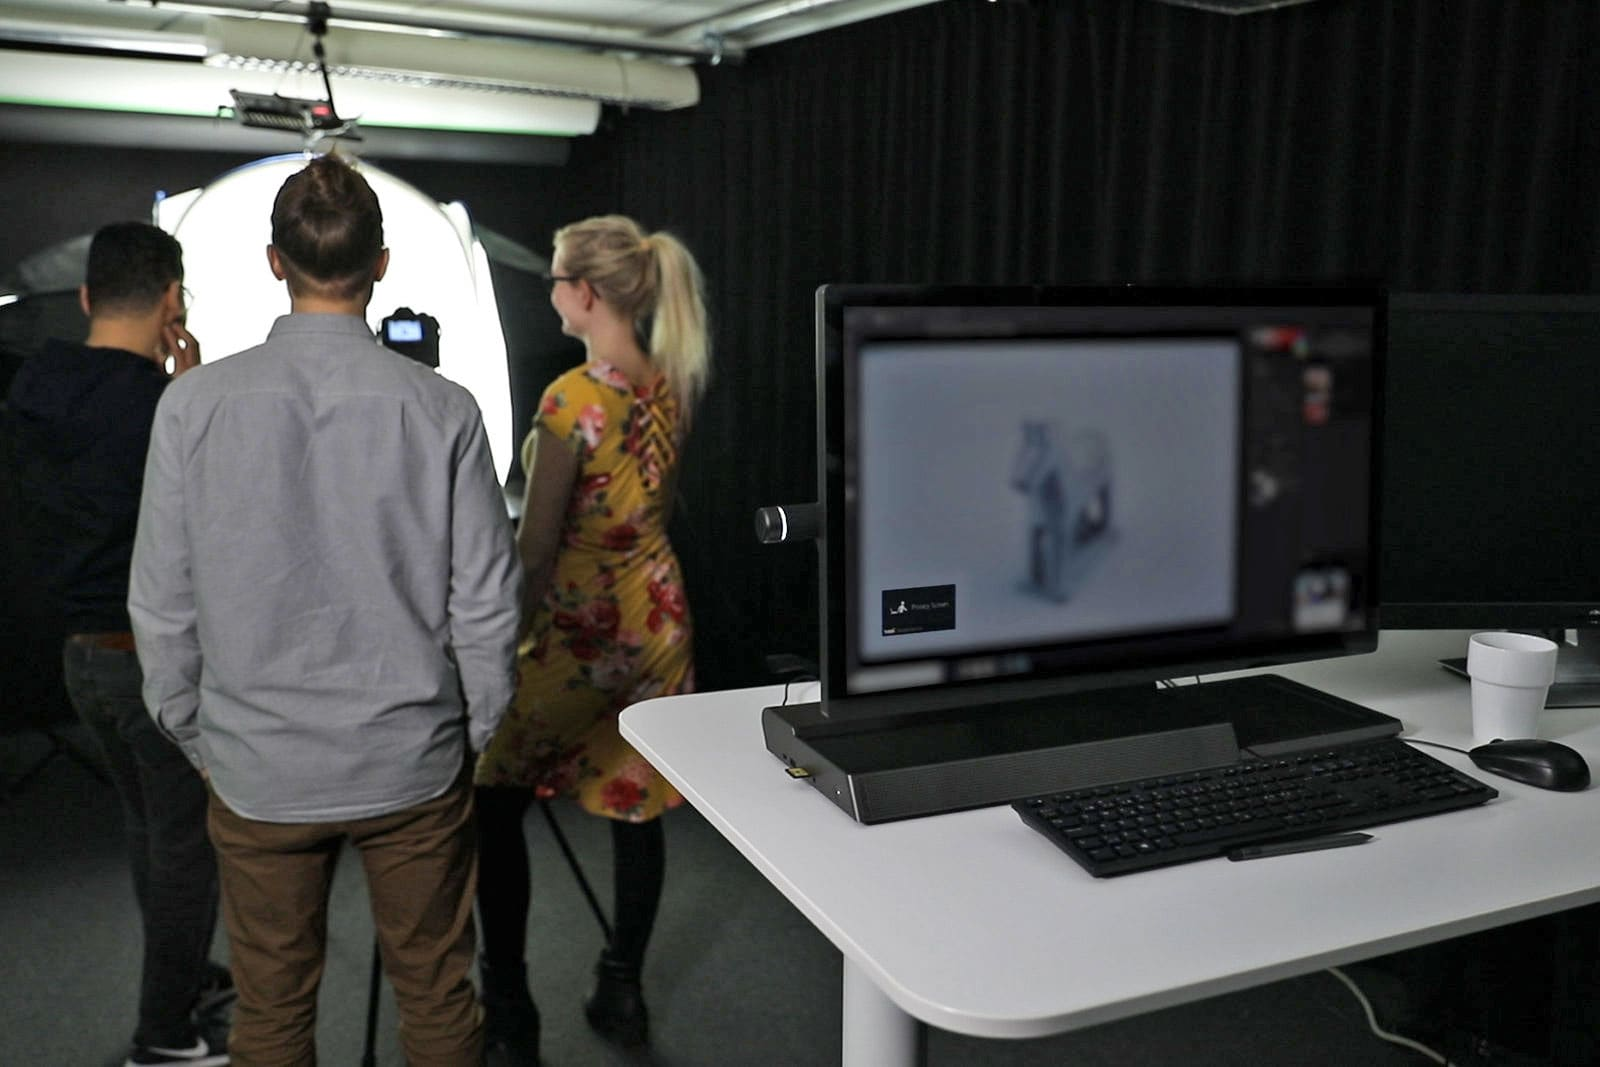 Tobii uses PC cameras to keep people from peeking at your